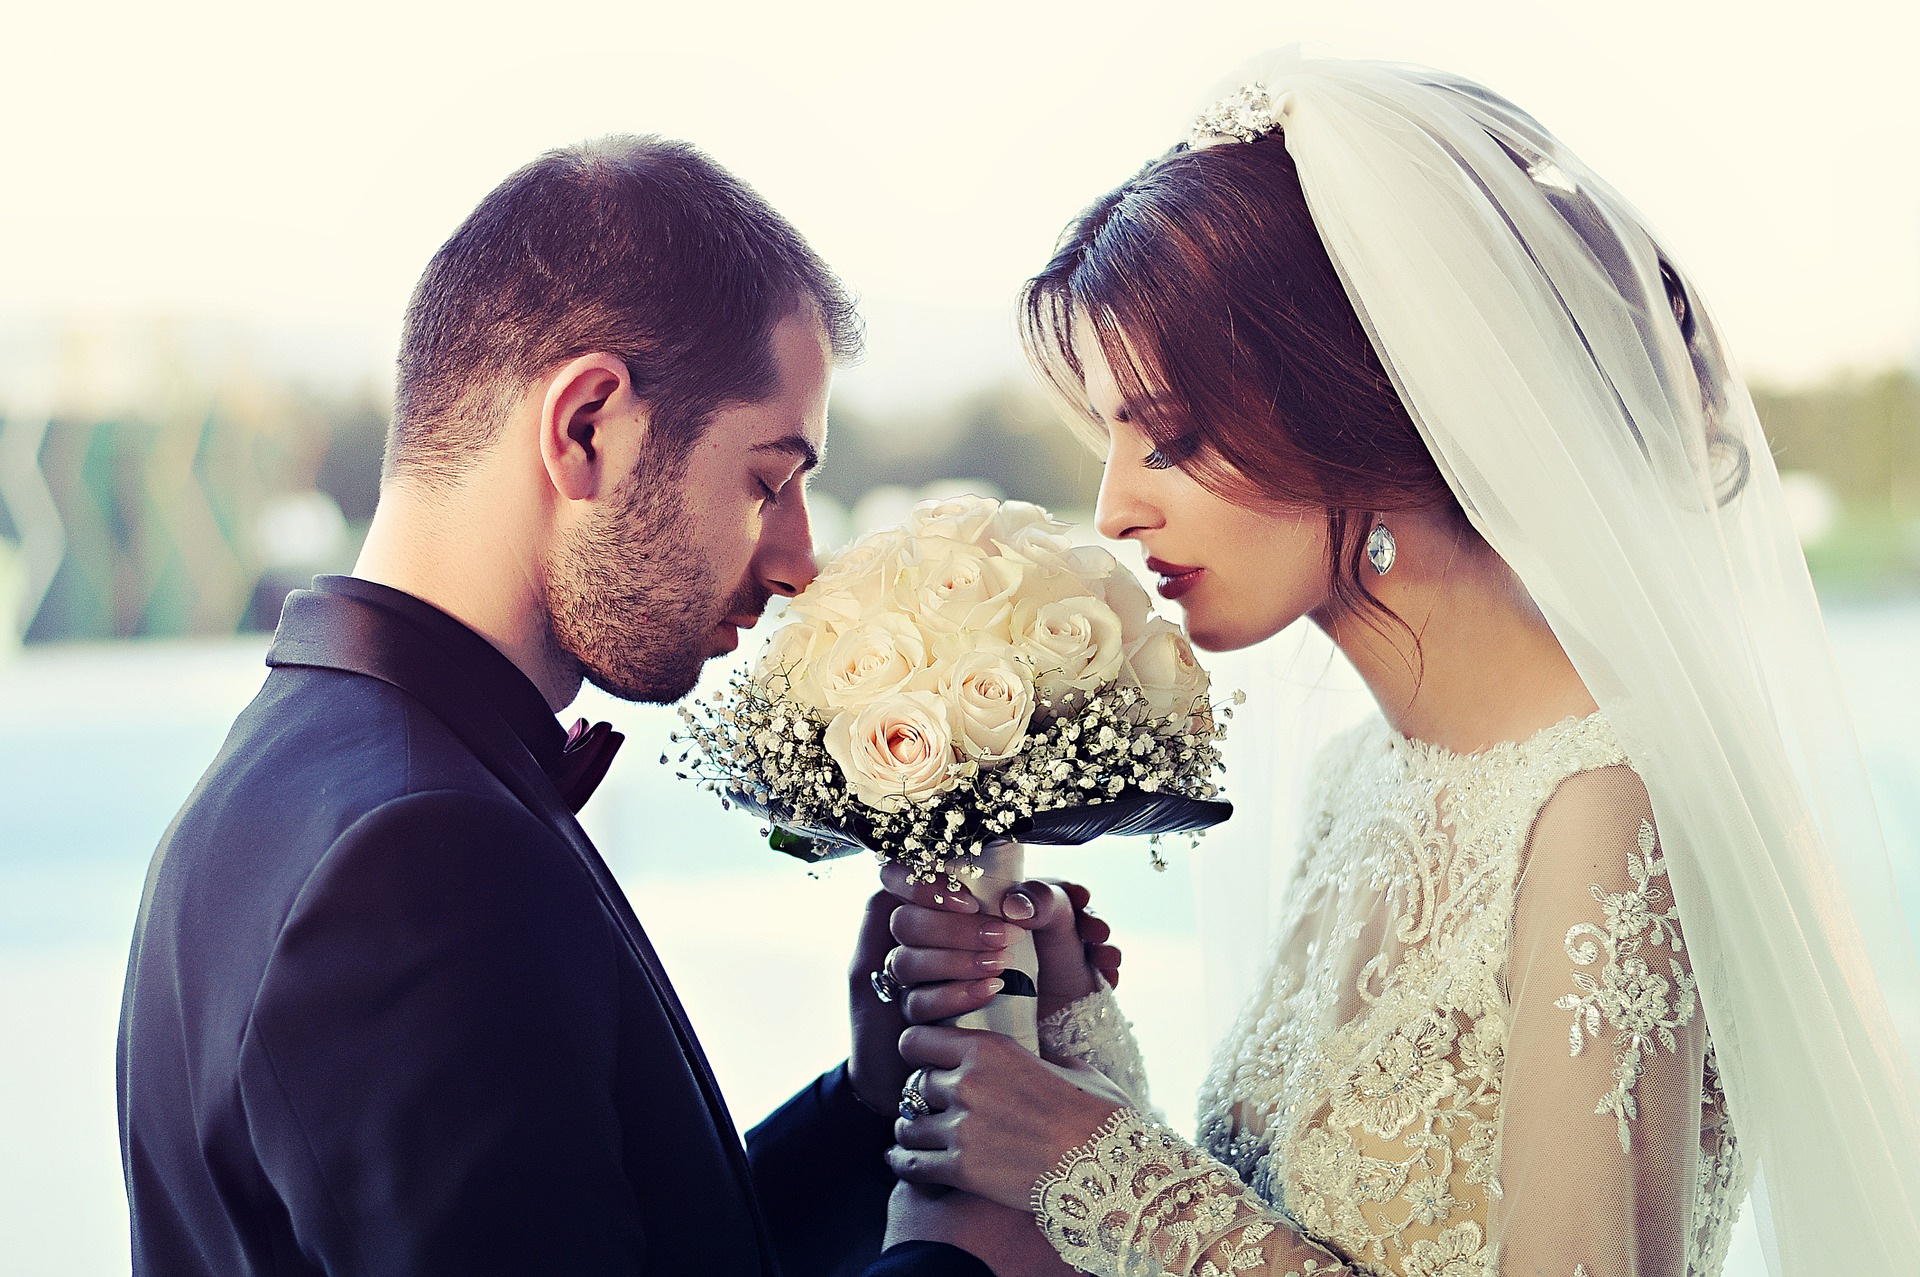 How to find the right partner for marriage